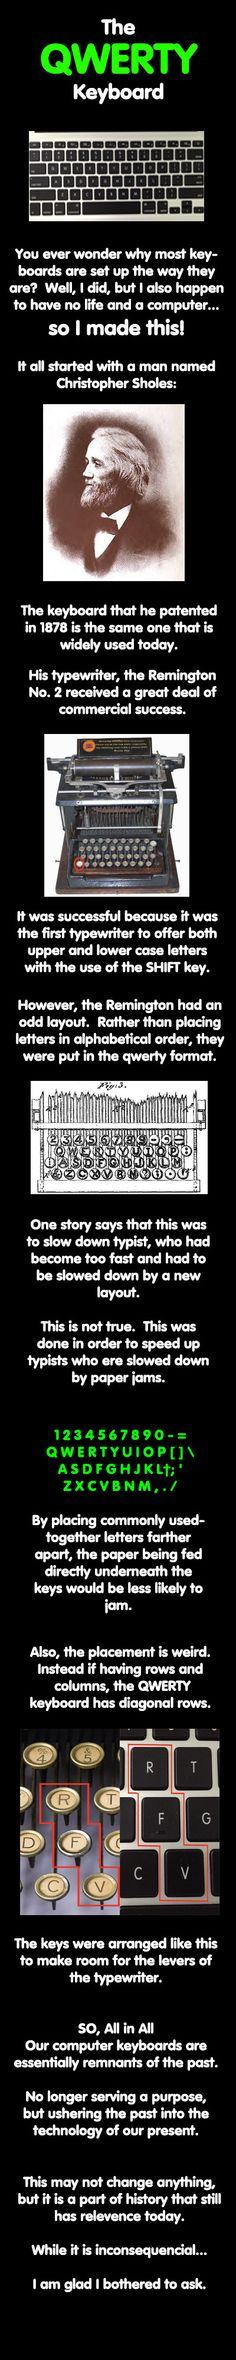 Why Are QWERTY Keyboards Made The Way They Are? [Pic]